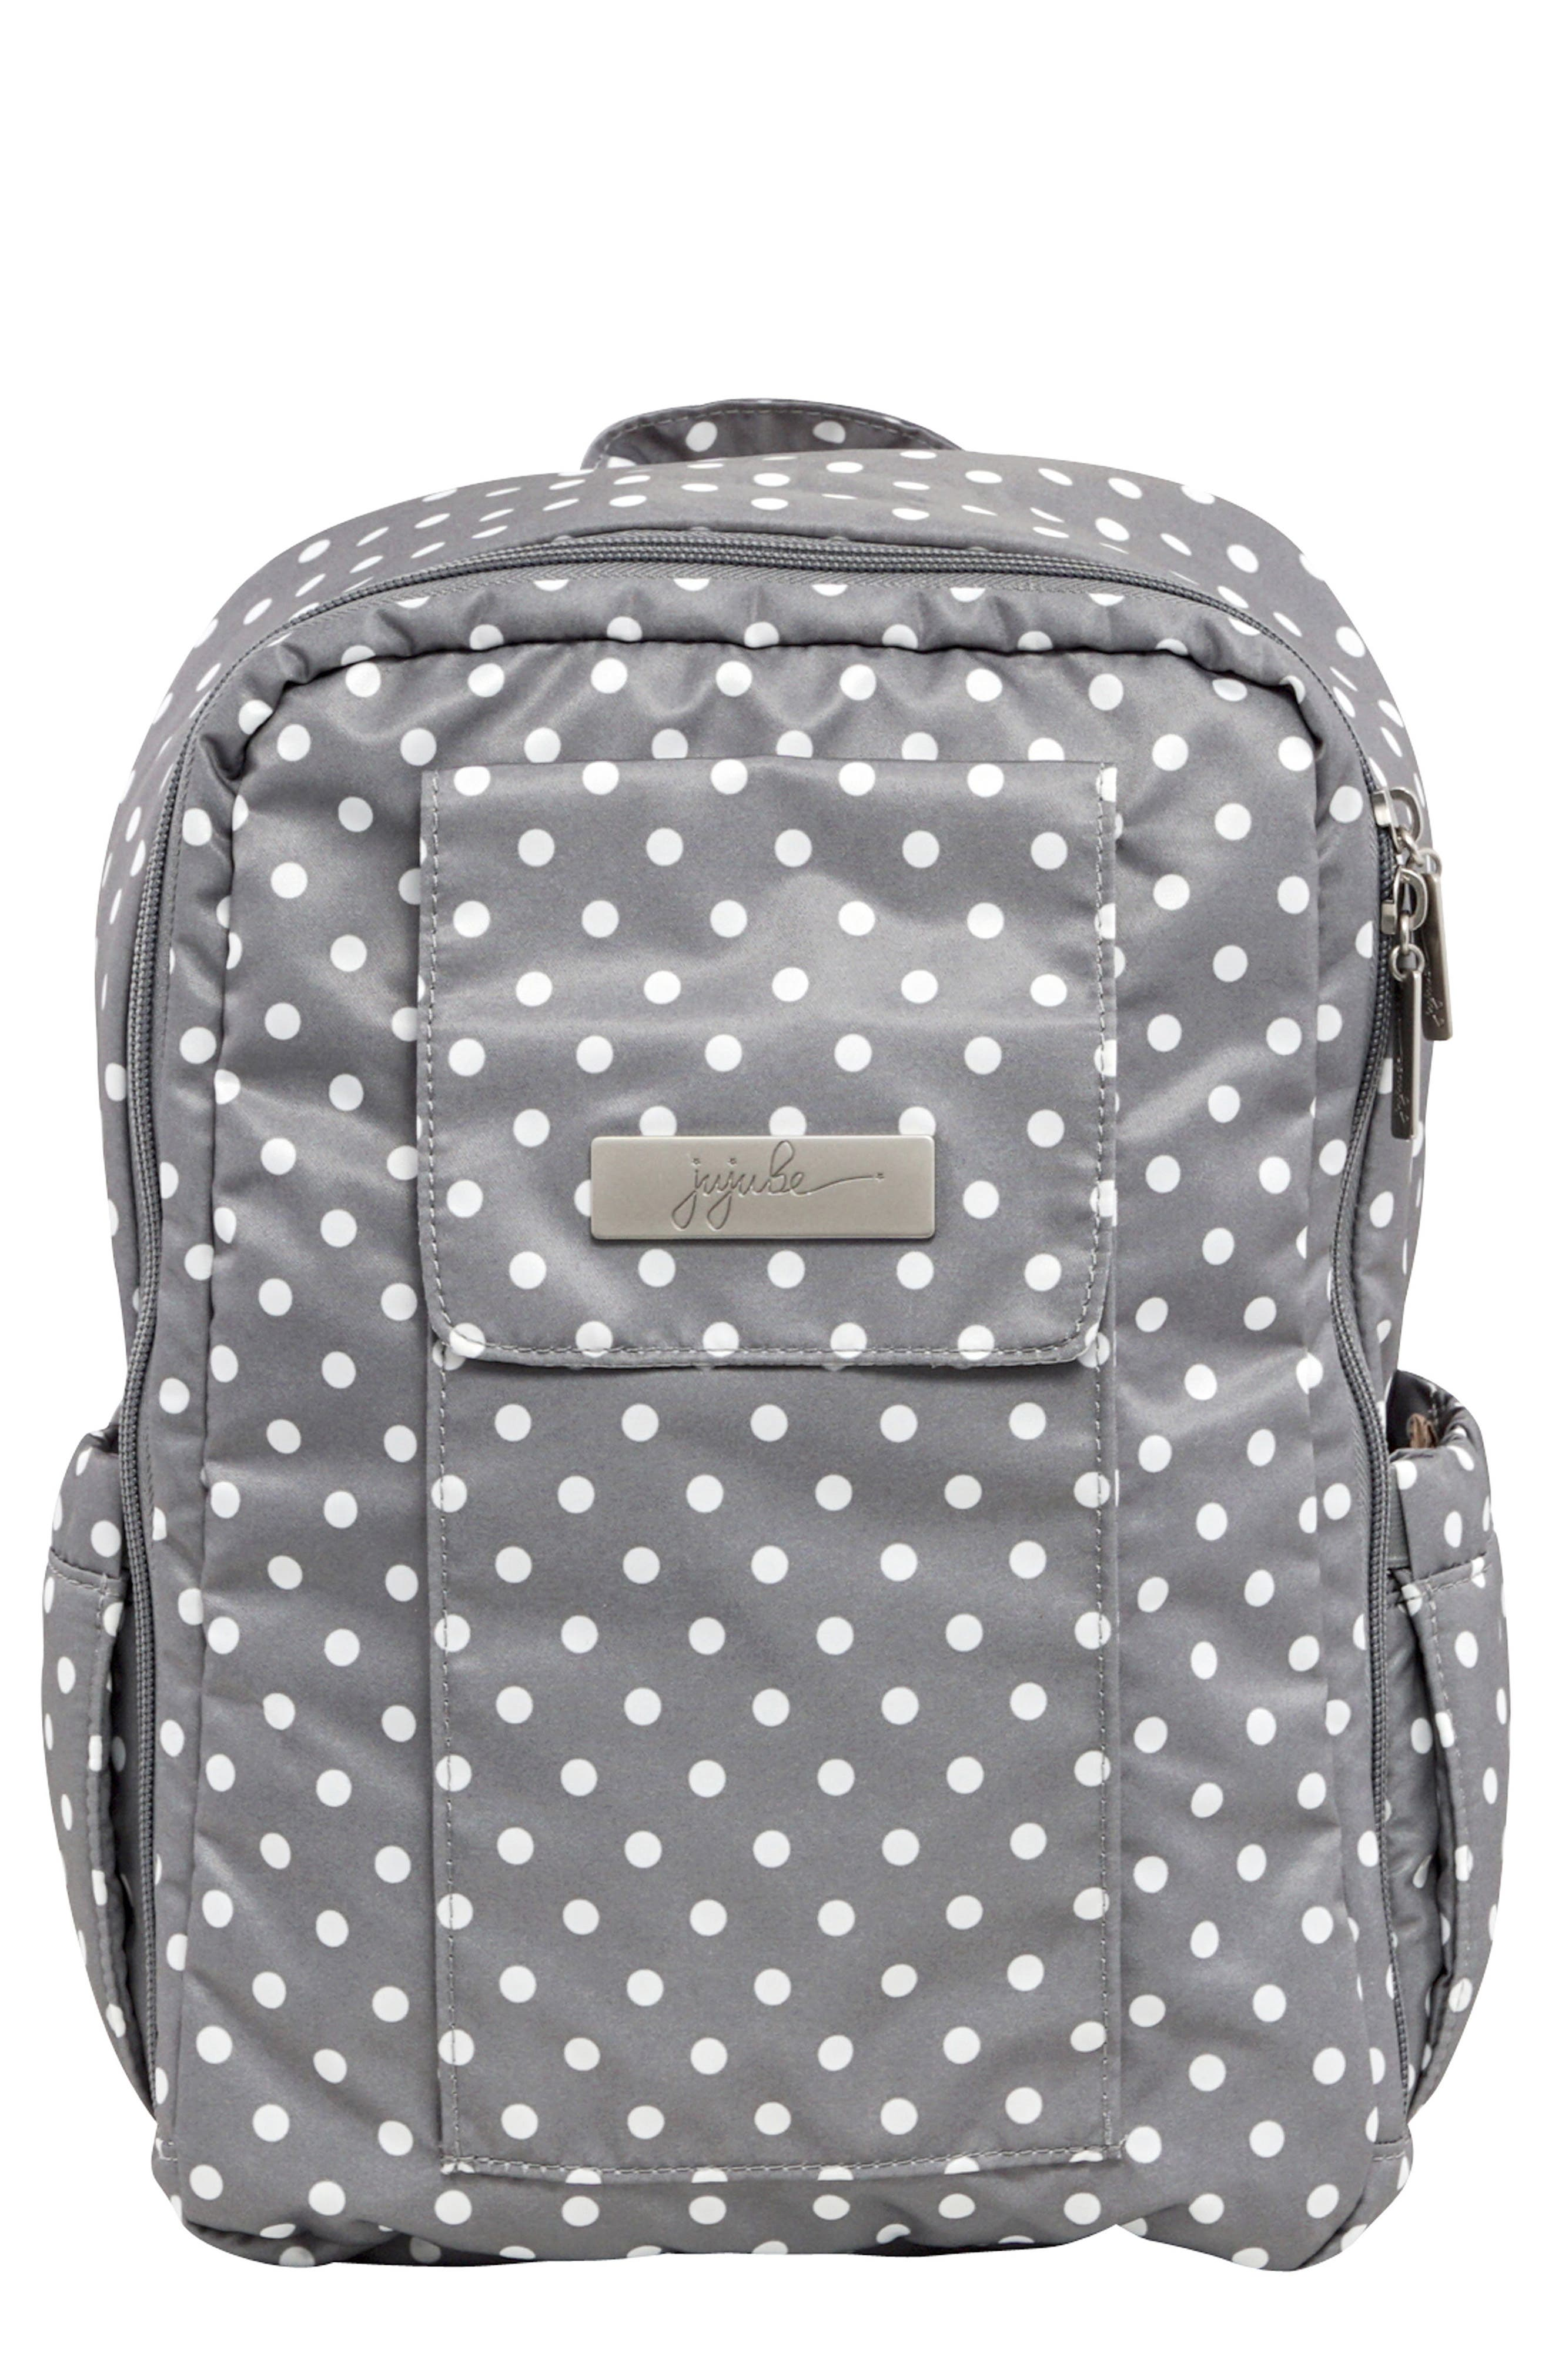 Main Image - Ju-Ju-Be 'Mini Be' Backpack